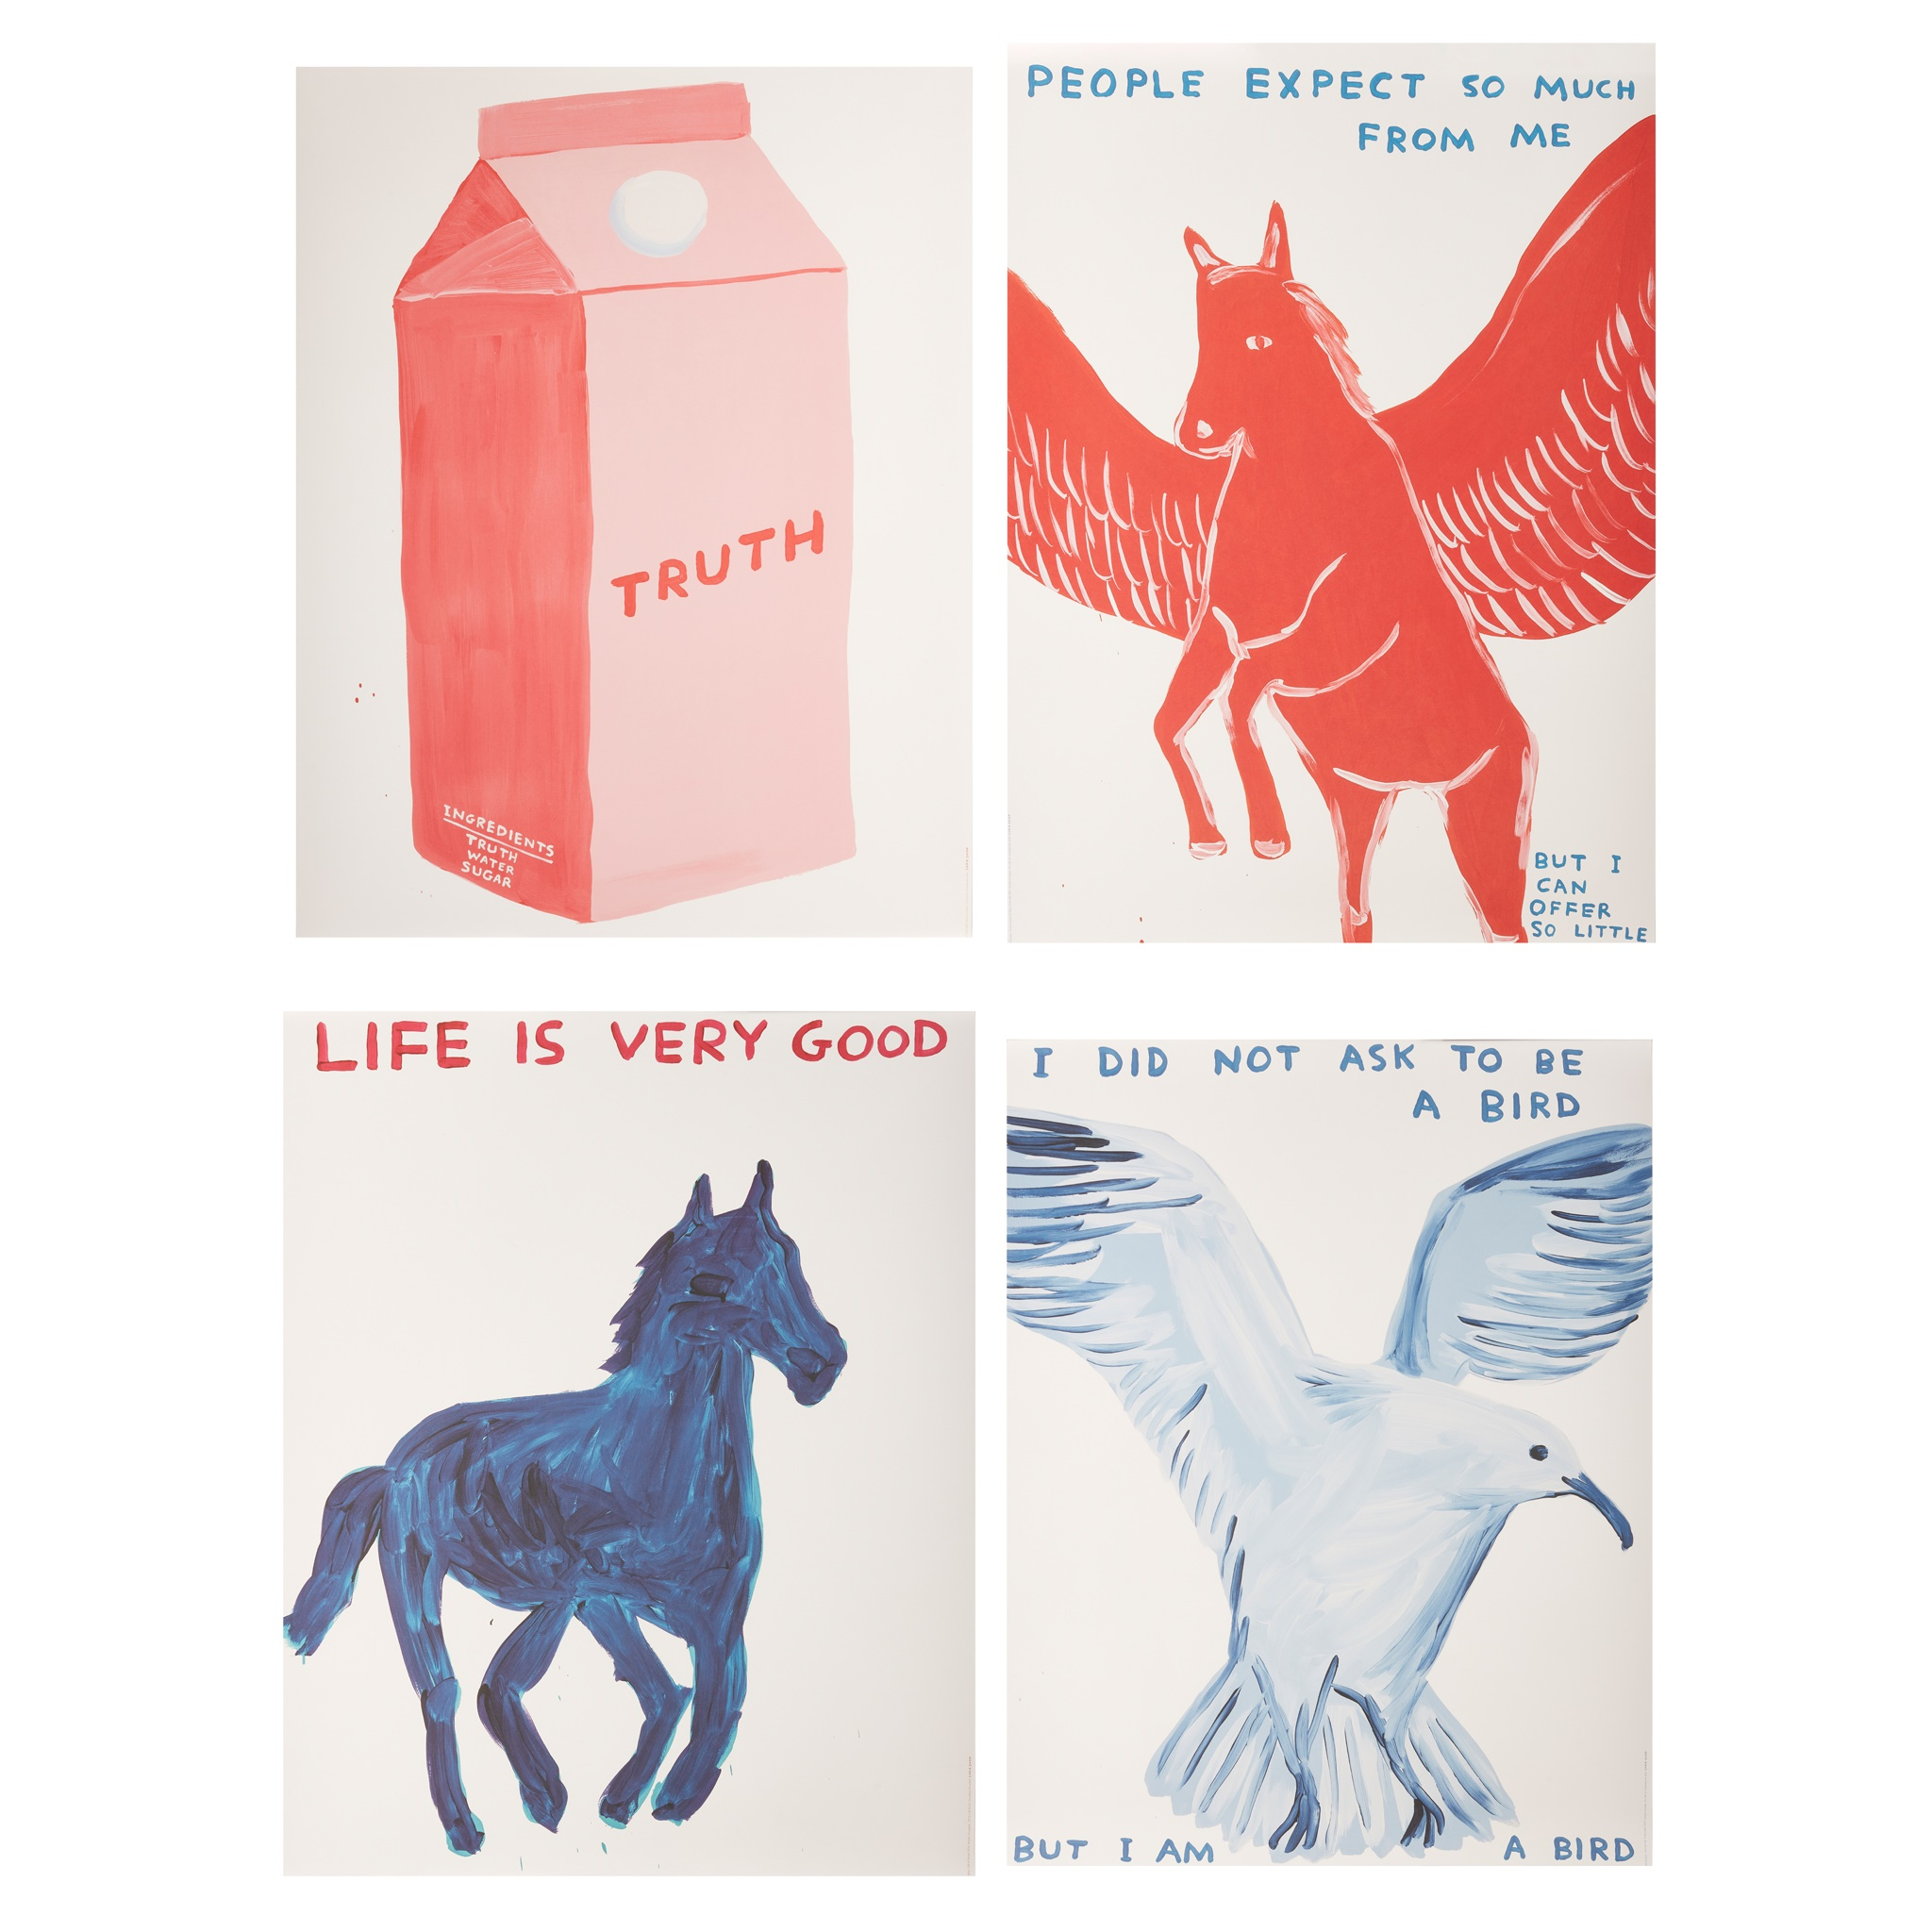 § DAVID SHRIGLEY O.B.E. (BRITISH 1968-) FOUR POSTERS (I DID NOT ASK TO BE A BIRD; PEOPLE EXPECT SO